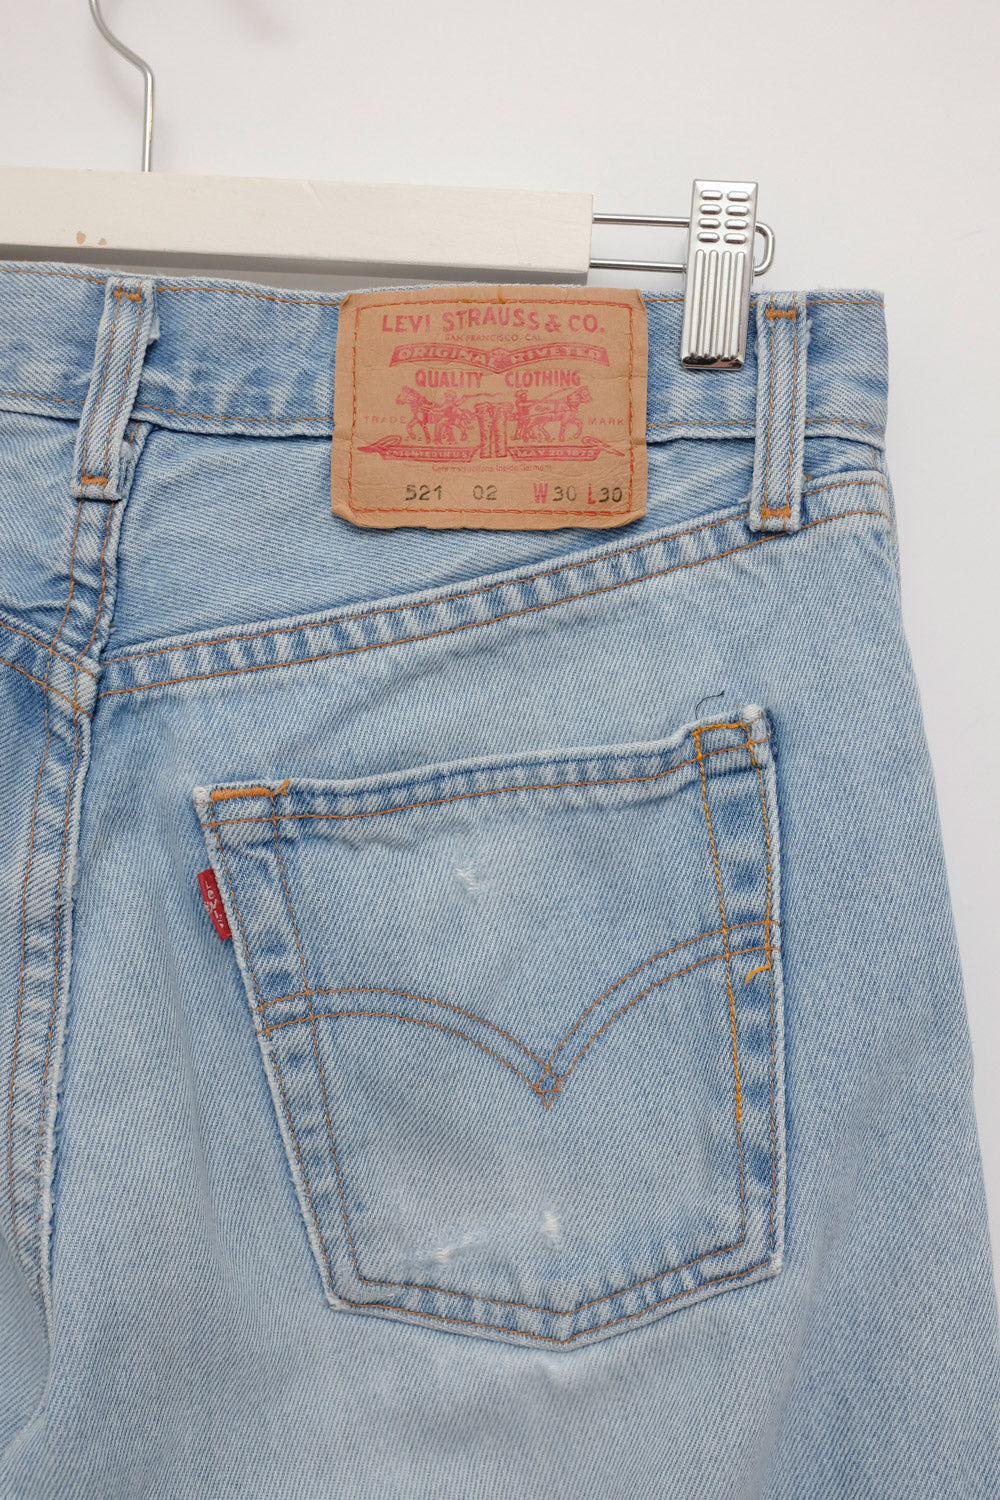 0021_LEVIS VINTAGE STRAIGHT TAPERED JEANS BLUE W30